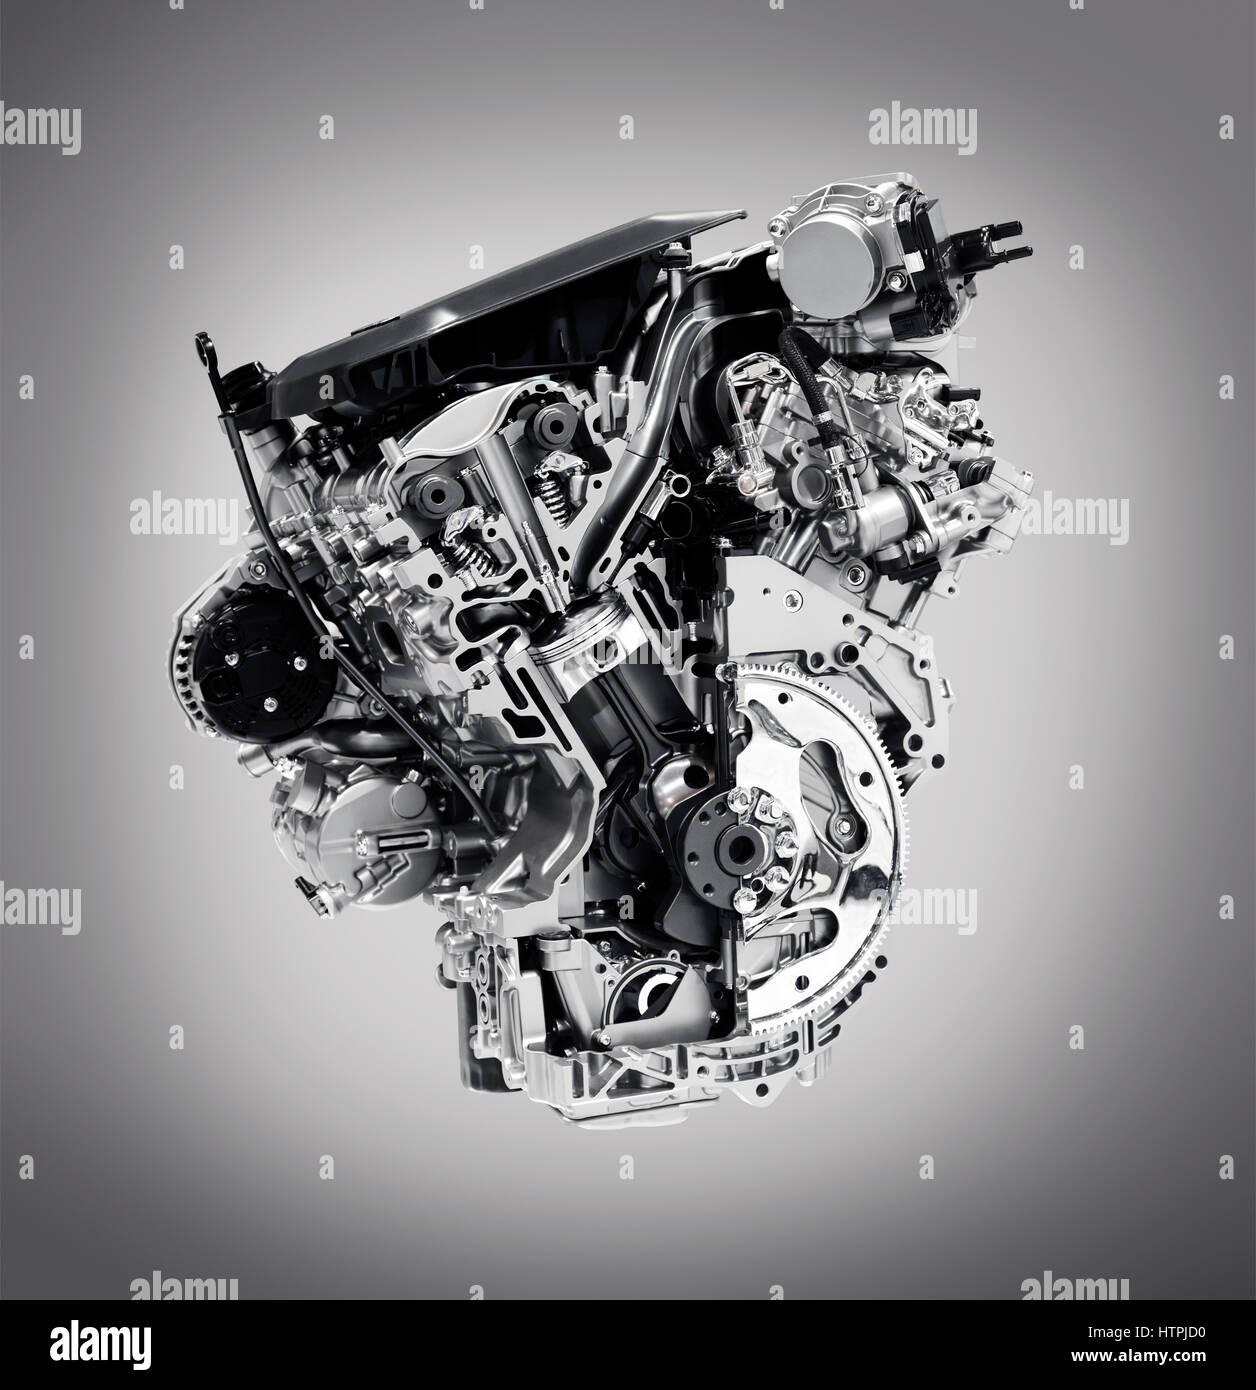 Cross section of 2017 Buick Lacrosse 3.6L V6 VVT DI 310HP car engine showing the cylinder, piston and valves isolated - Stock Image